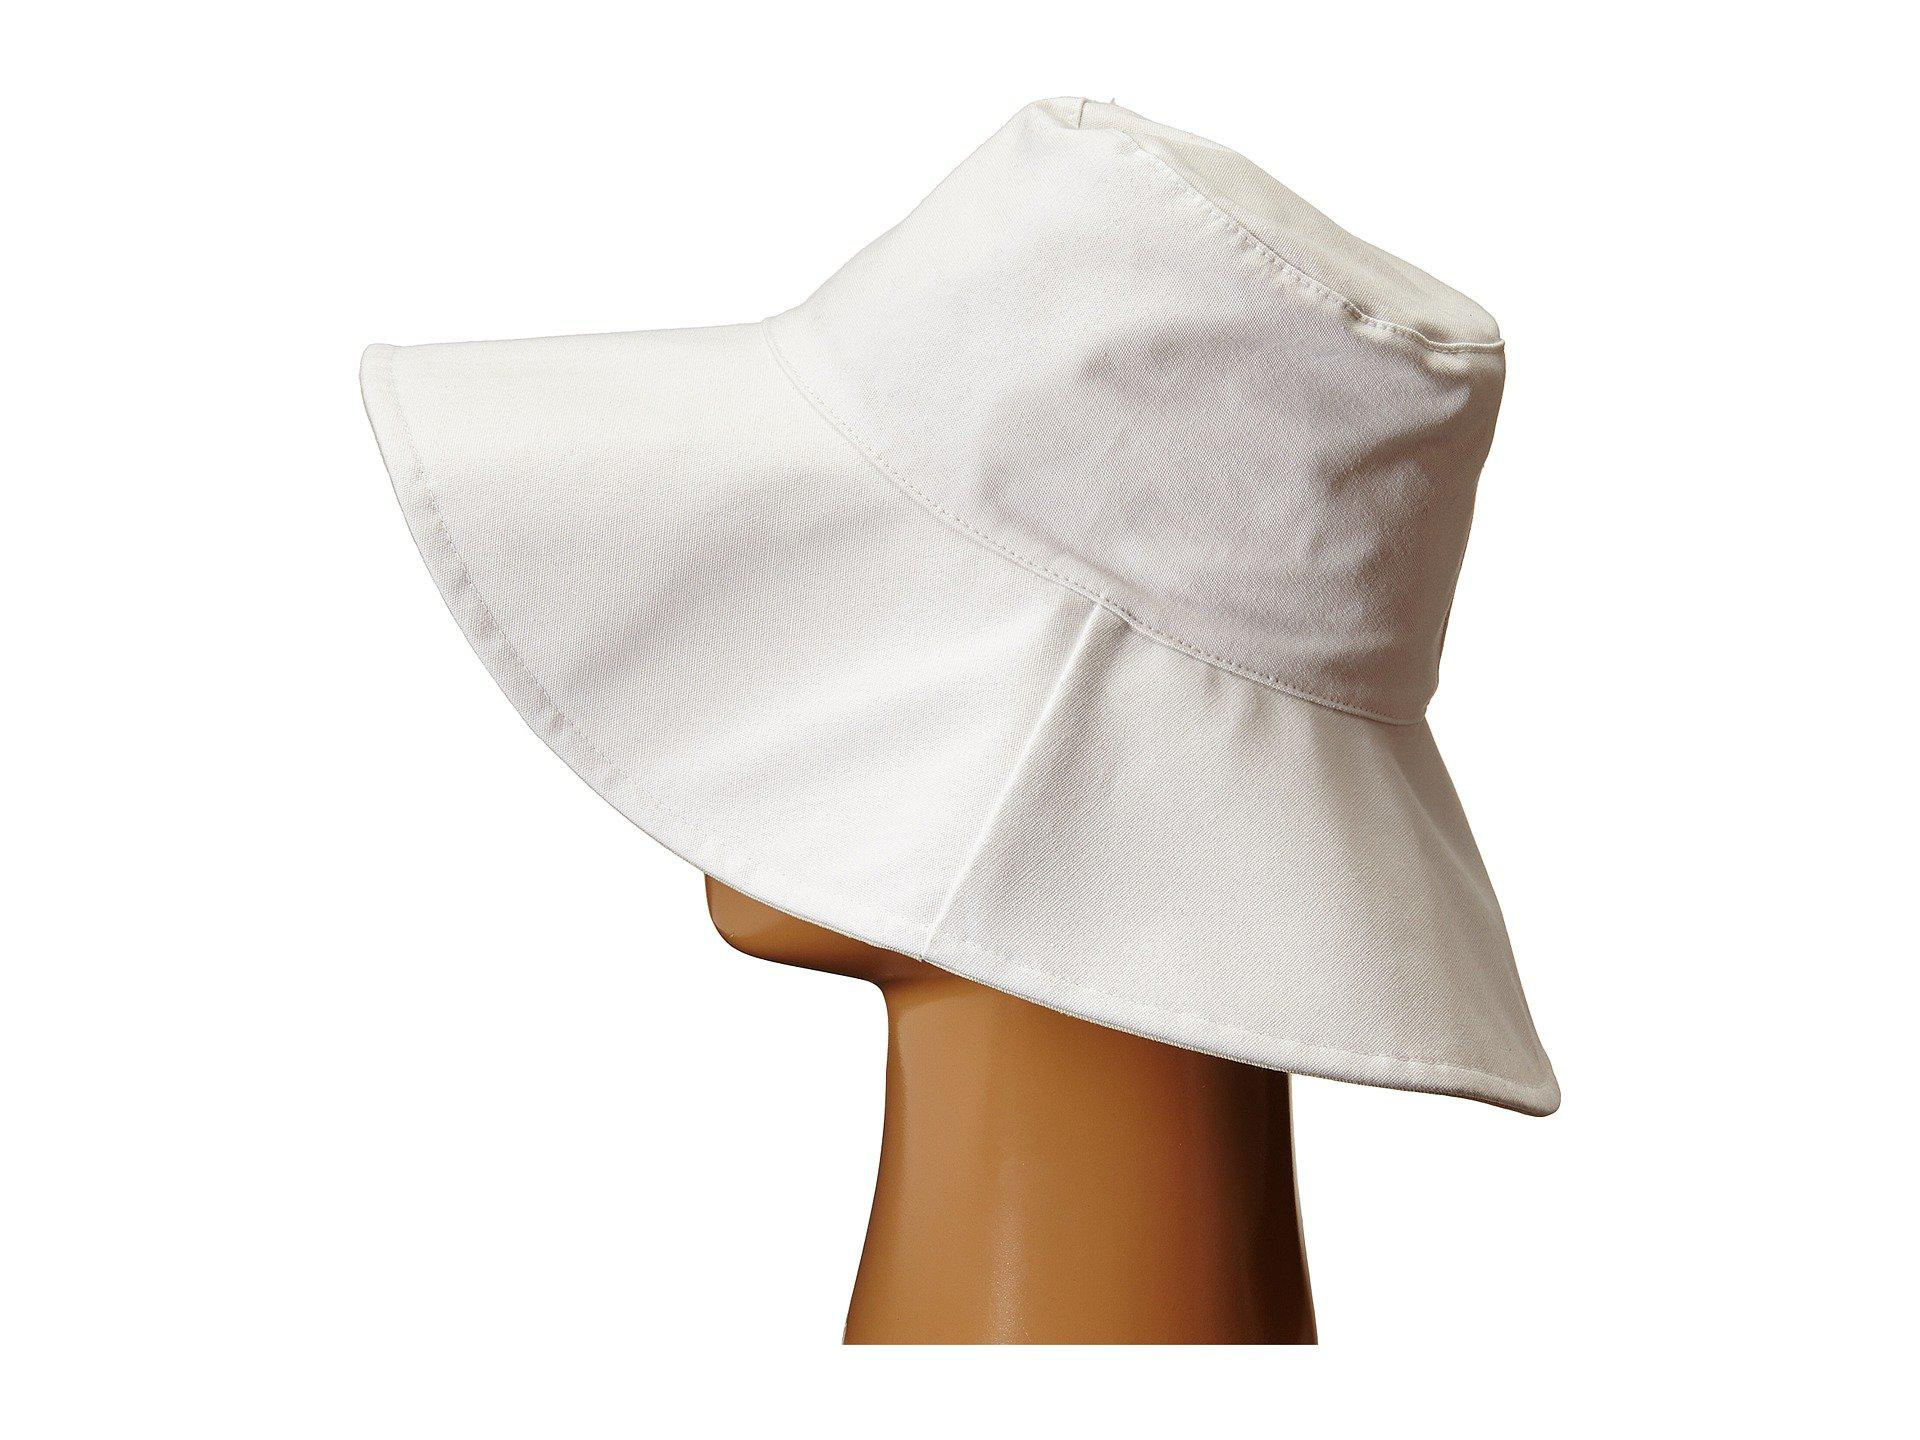 Lyst - Hat Attack Canvas Reversible Sunhat (white) Traditional Hats ... 6da88ada6983